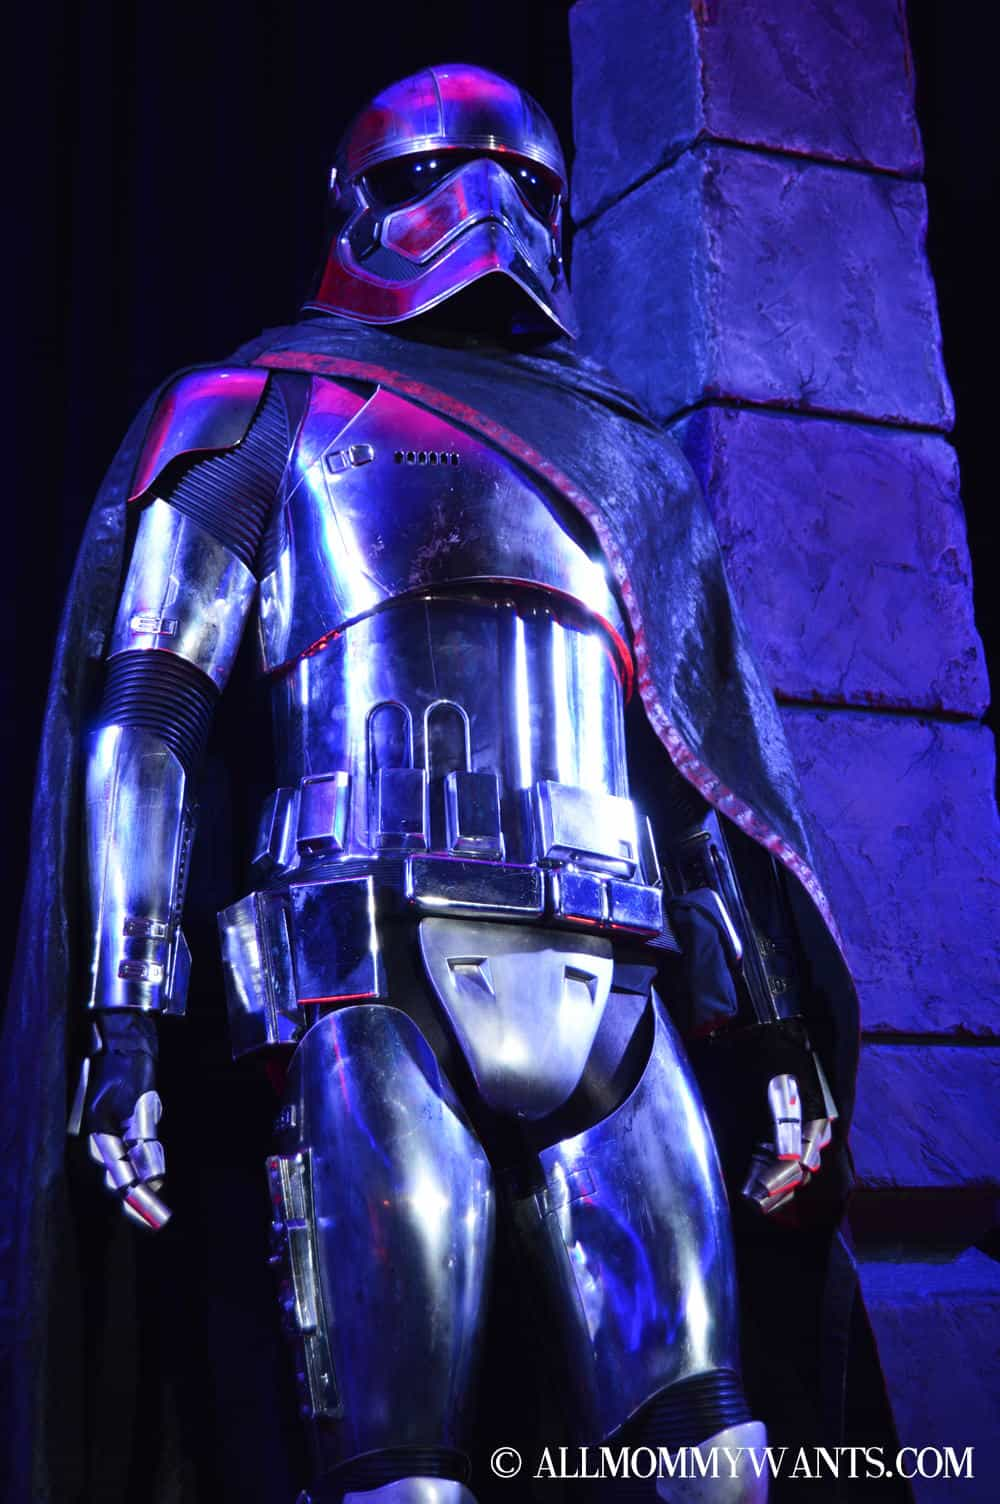 Captain Phasma's armor (played by Gwendoline Christie).